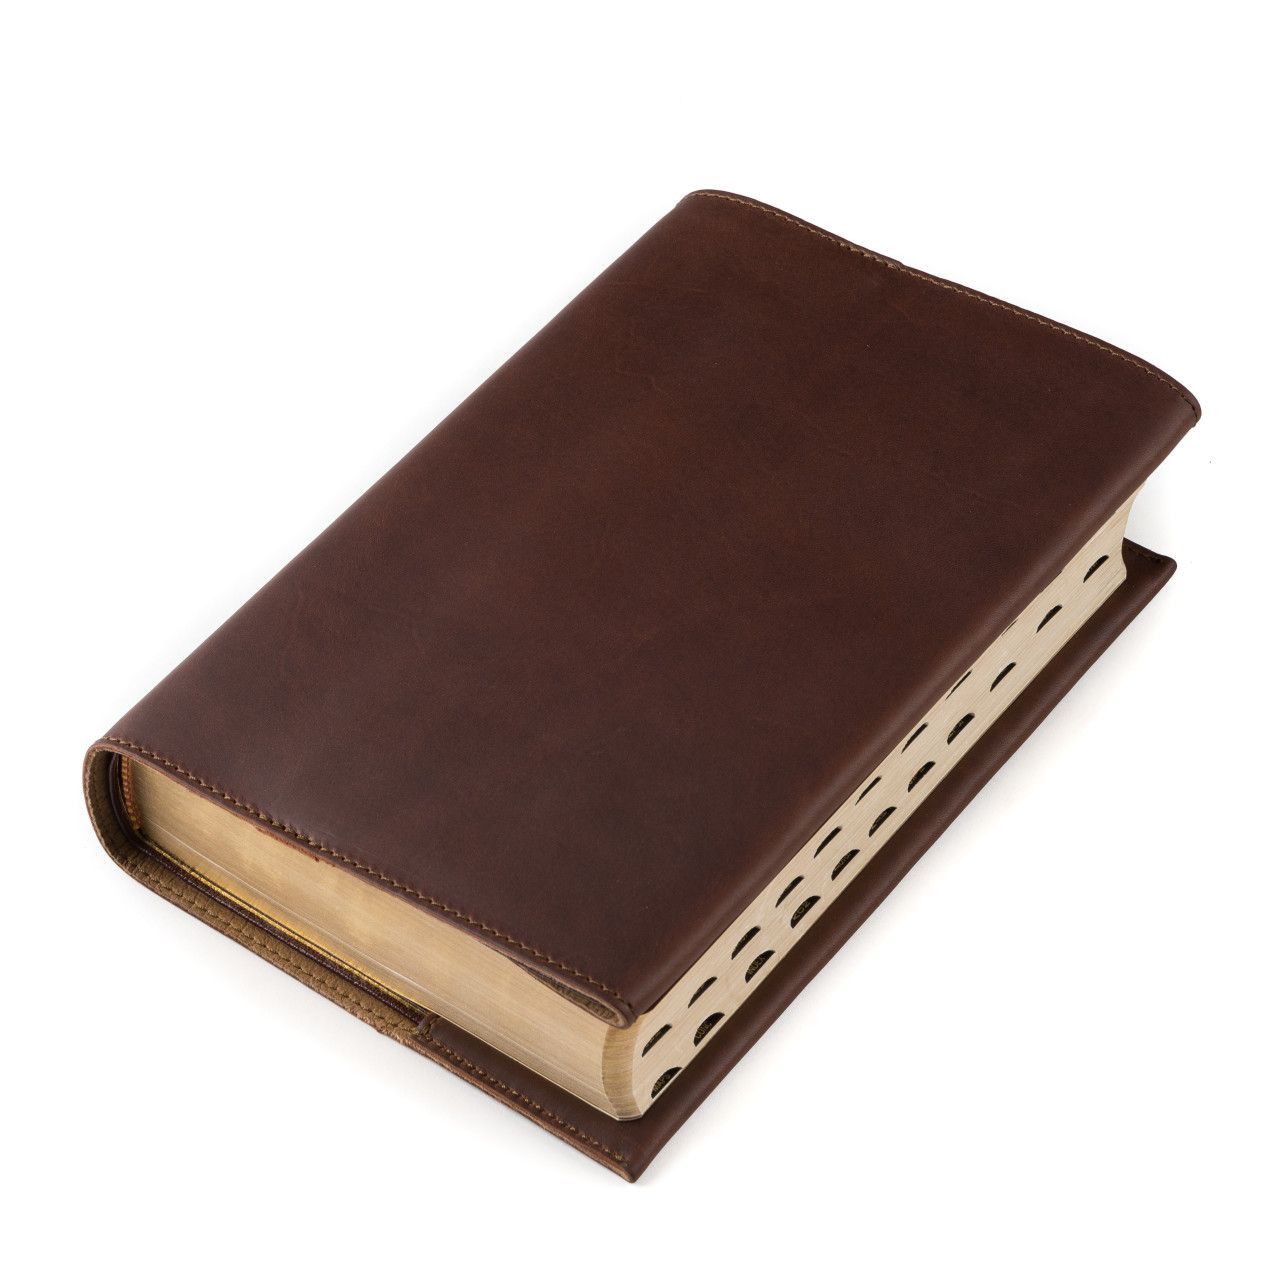 leather book cover large in chestnut leather